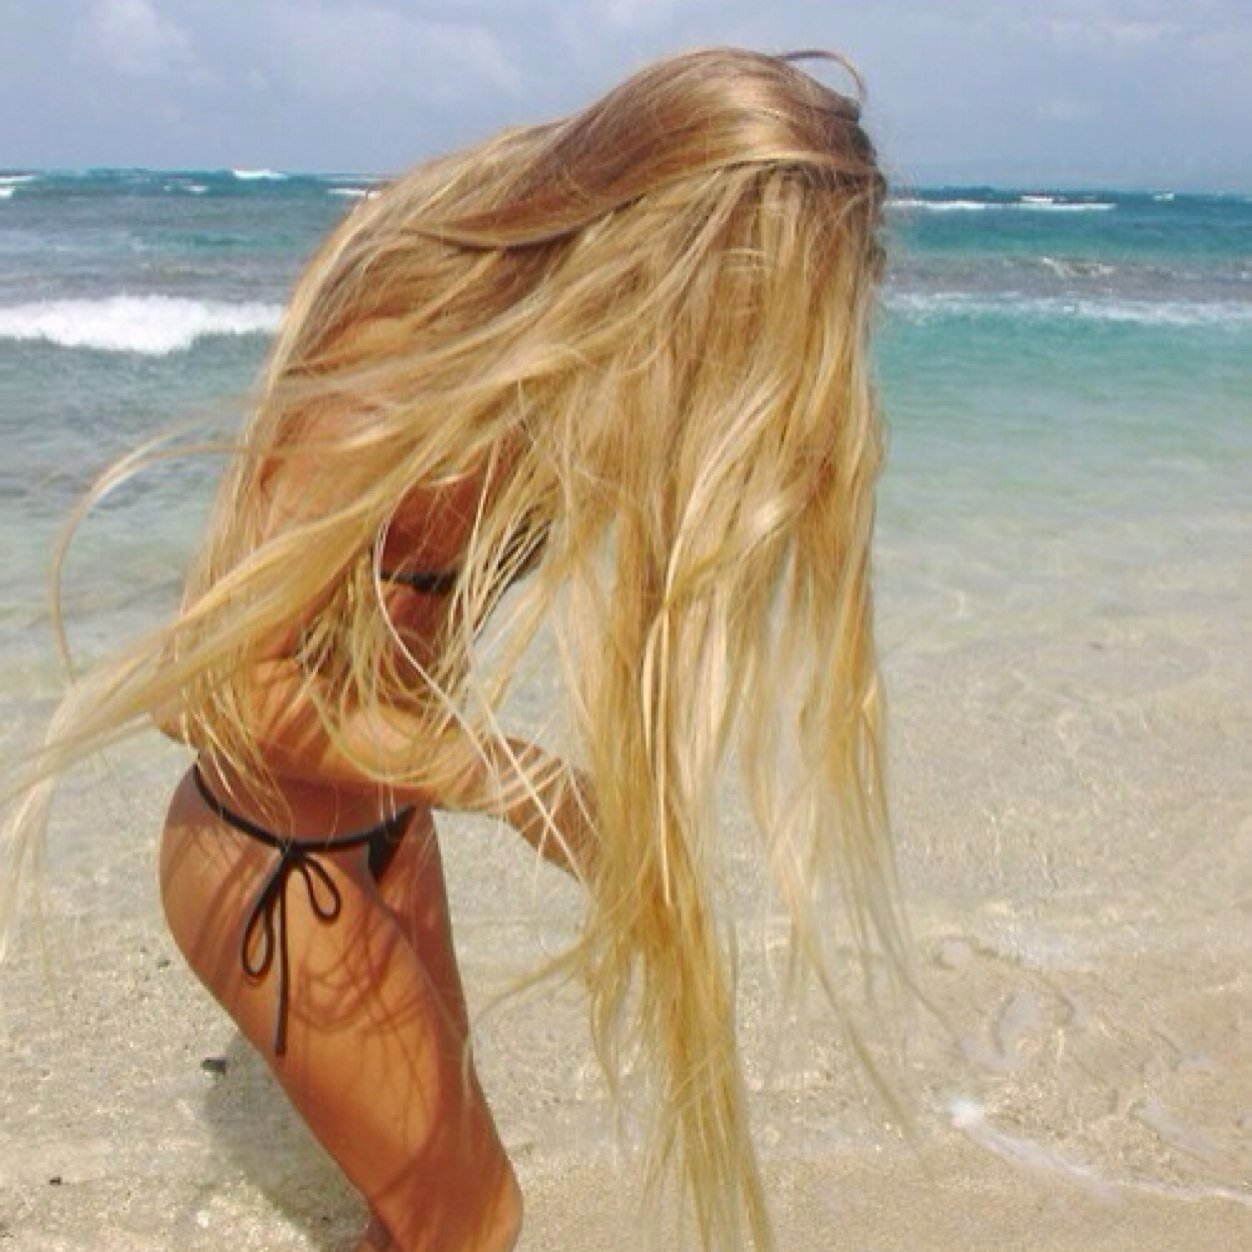 Blonde girls on beach apologise, but